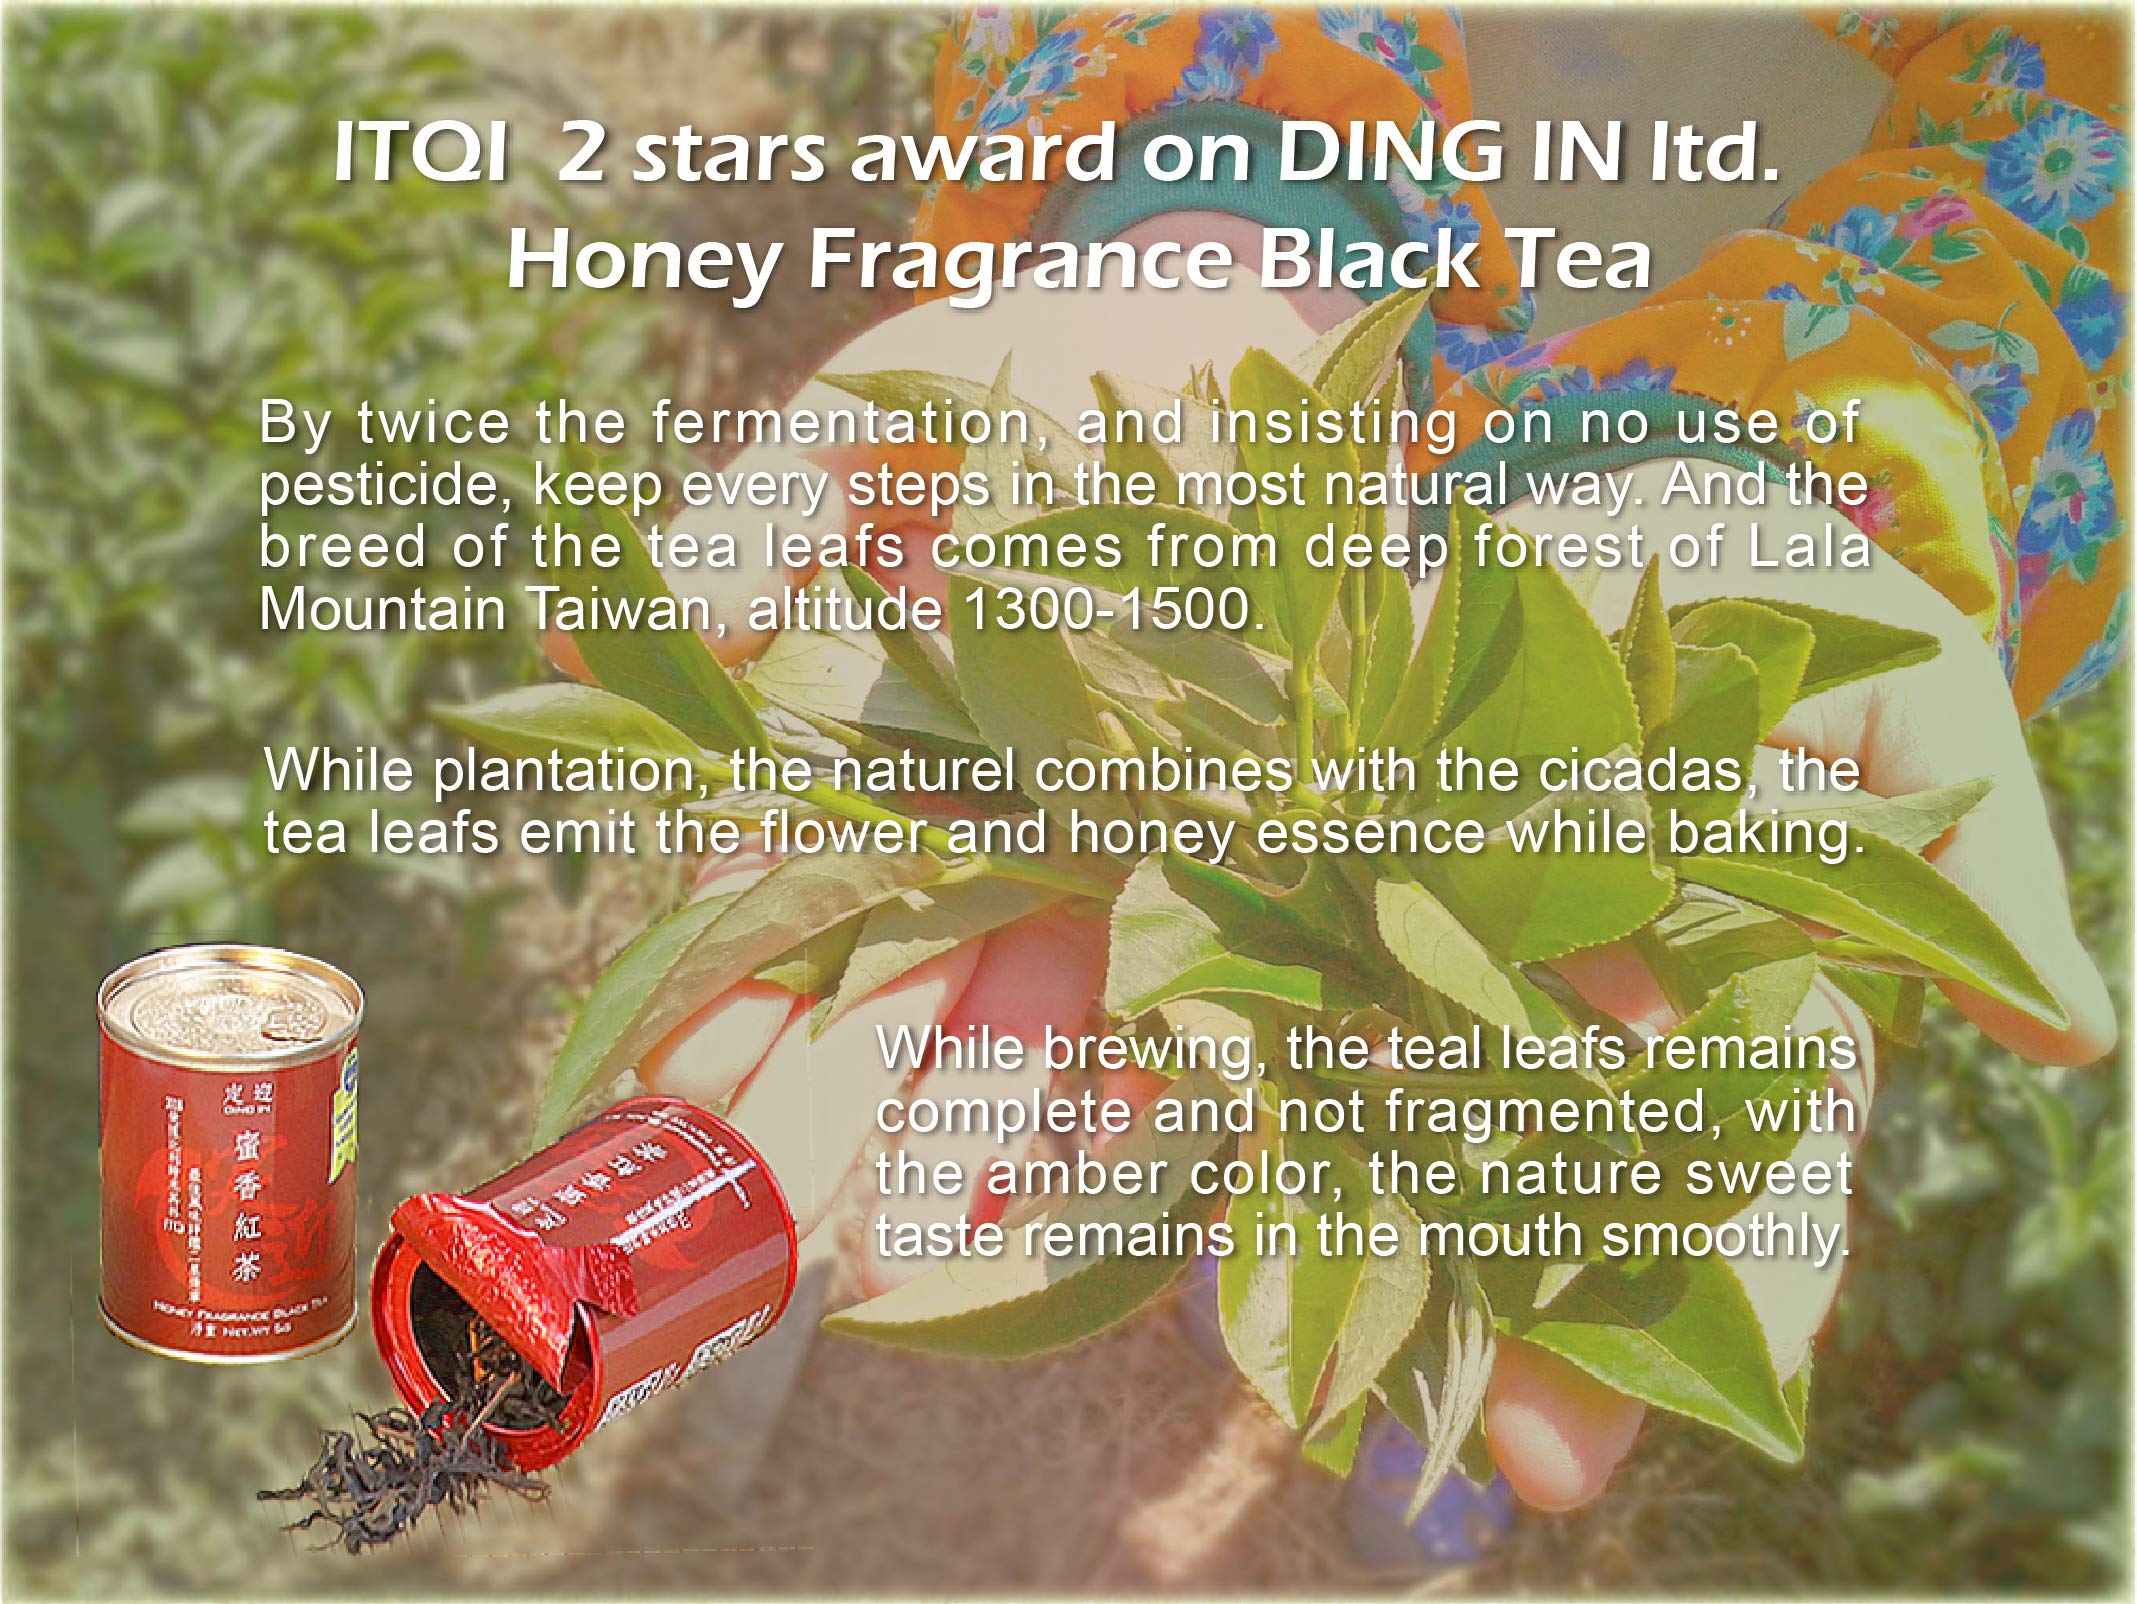 DING IN Honey Fragrance Black Tea Black Box 5g12can/box by Ding In ltd. (Image #3)